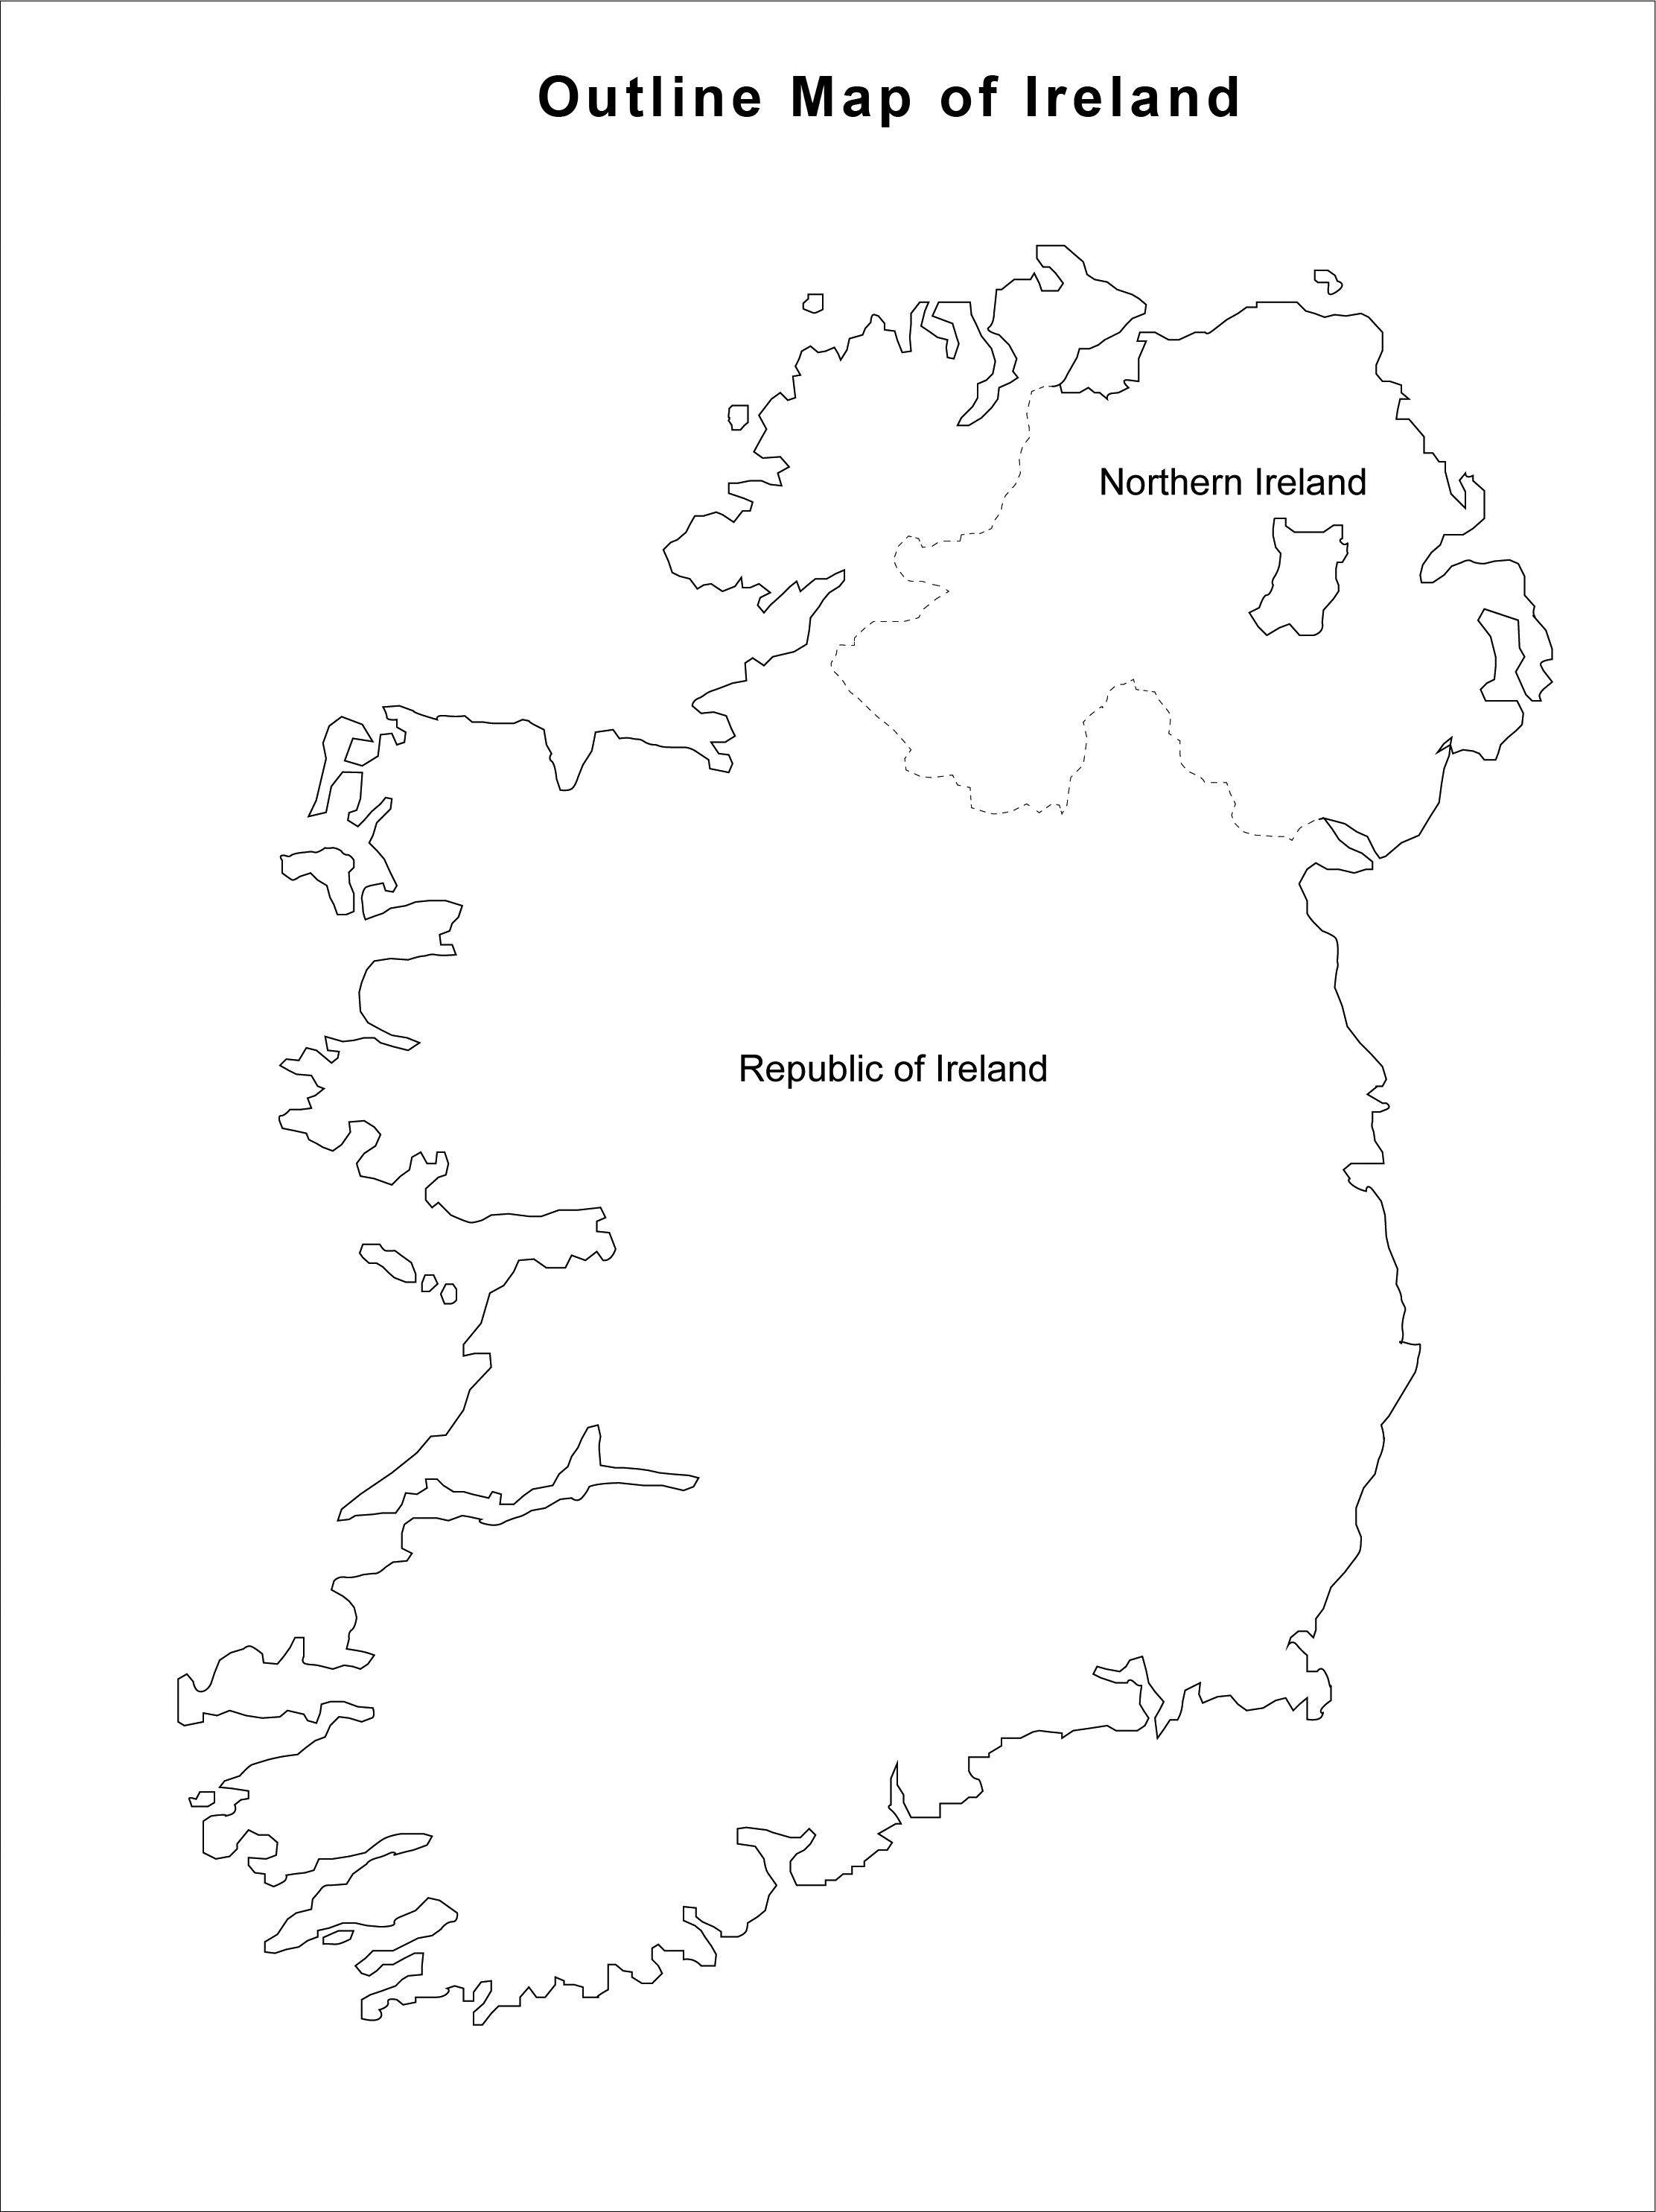 cain maps outline map of ireland northern ireland and republic